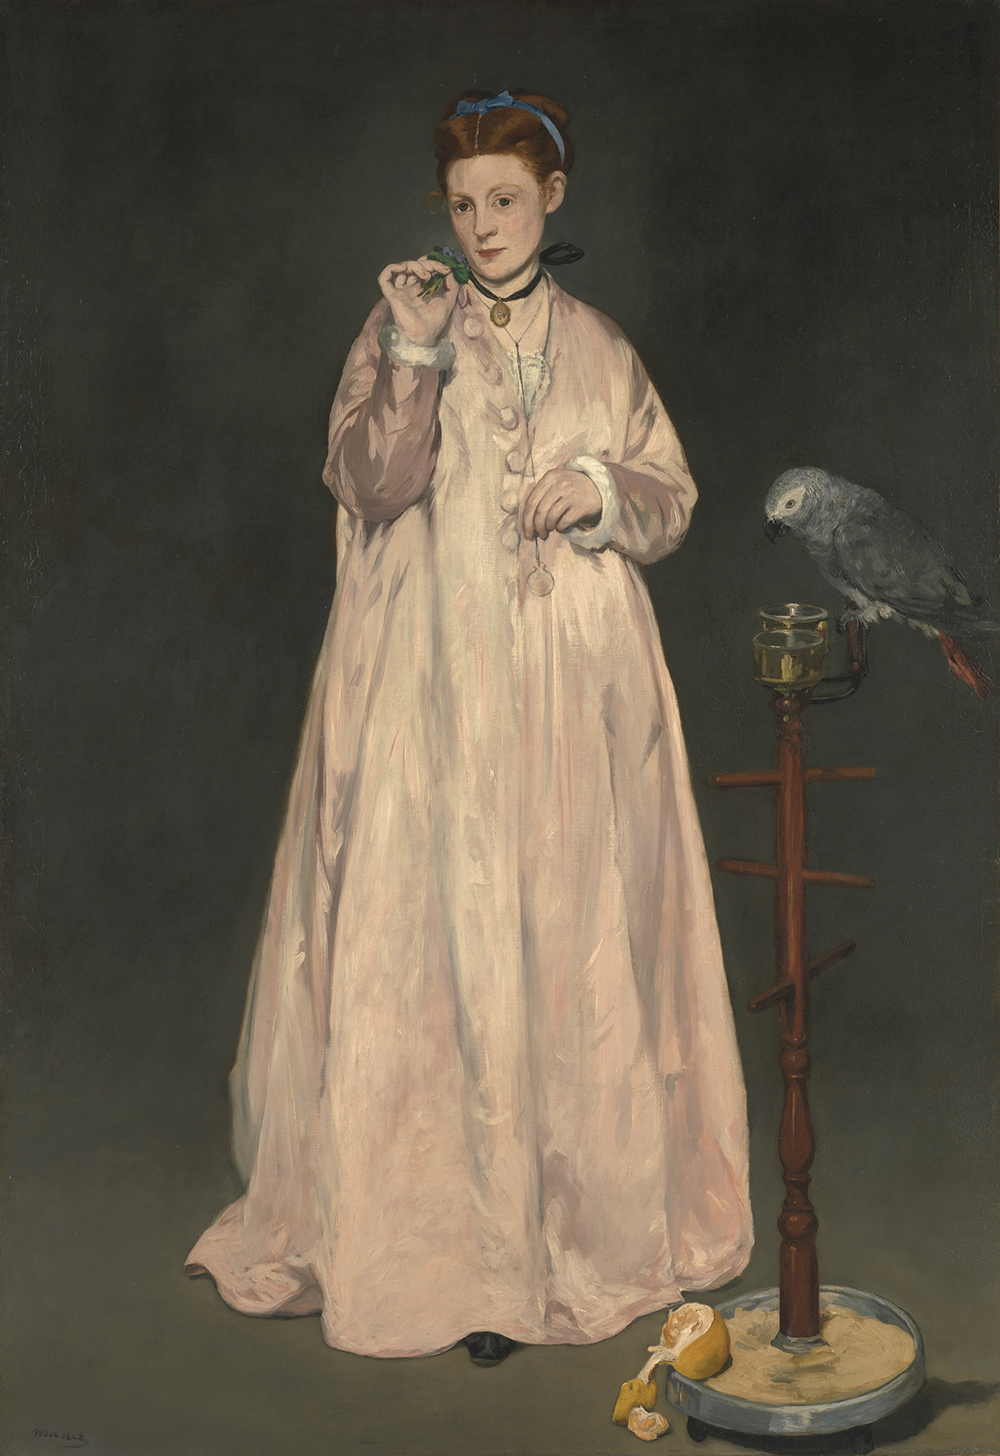 Young Lady in 1866, by Édouard Manet, 1866. The Metropolitan Museum of Art, Gift of Erwin Davis, 1889.